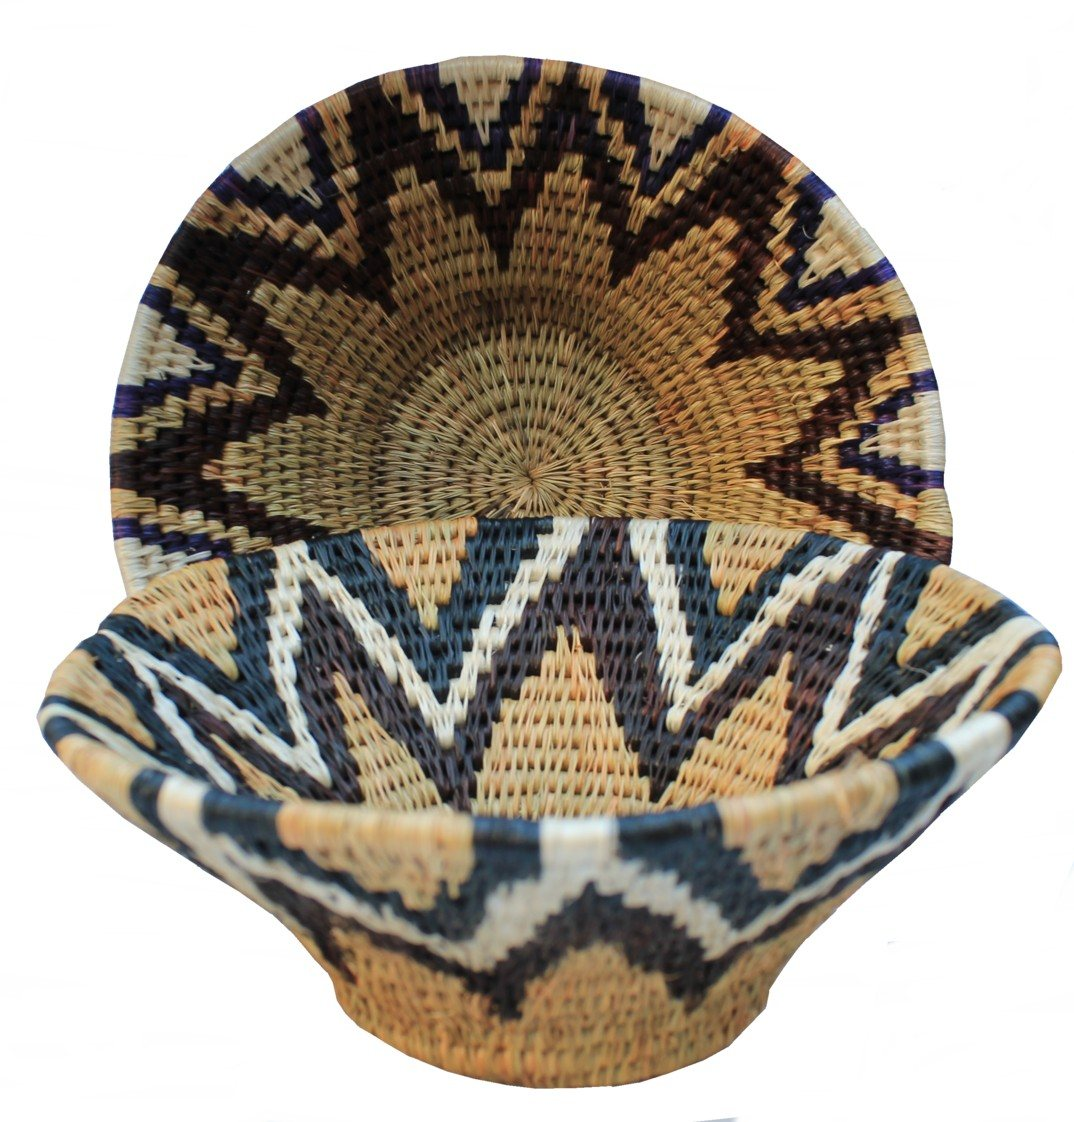 African Woven Hamper Unique Gifts Fairtrade Gifts African Baskets